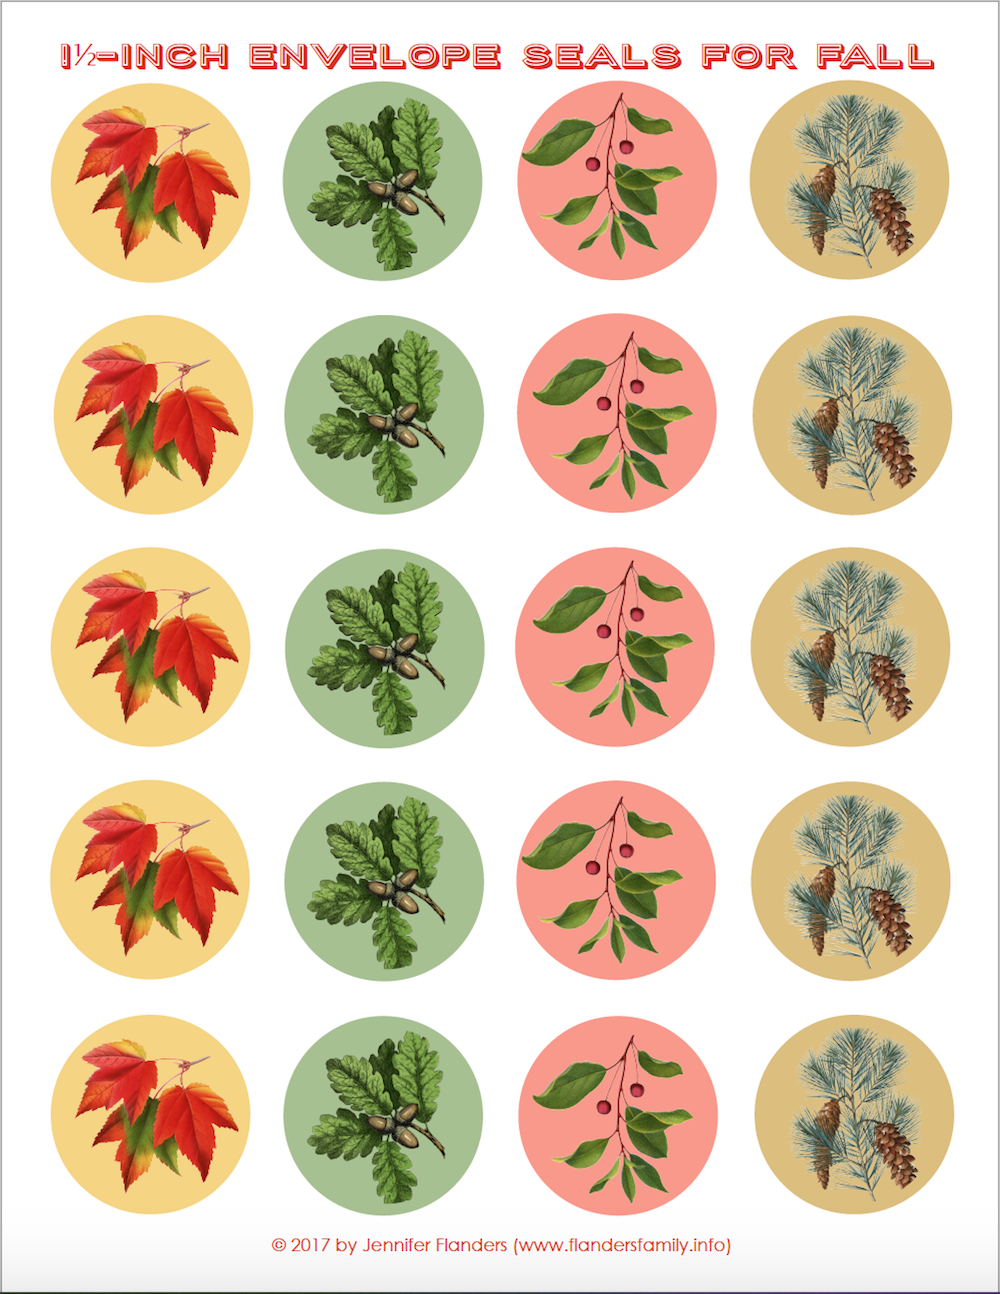 Free Printable Stickers/ Envelope Seals for Fall